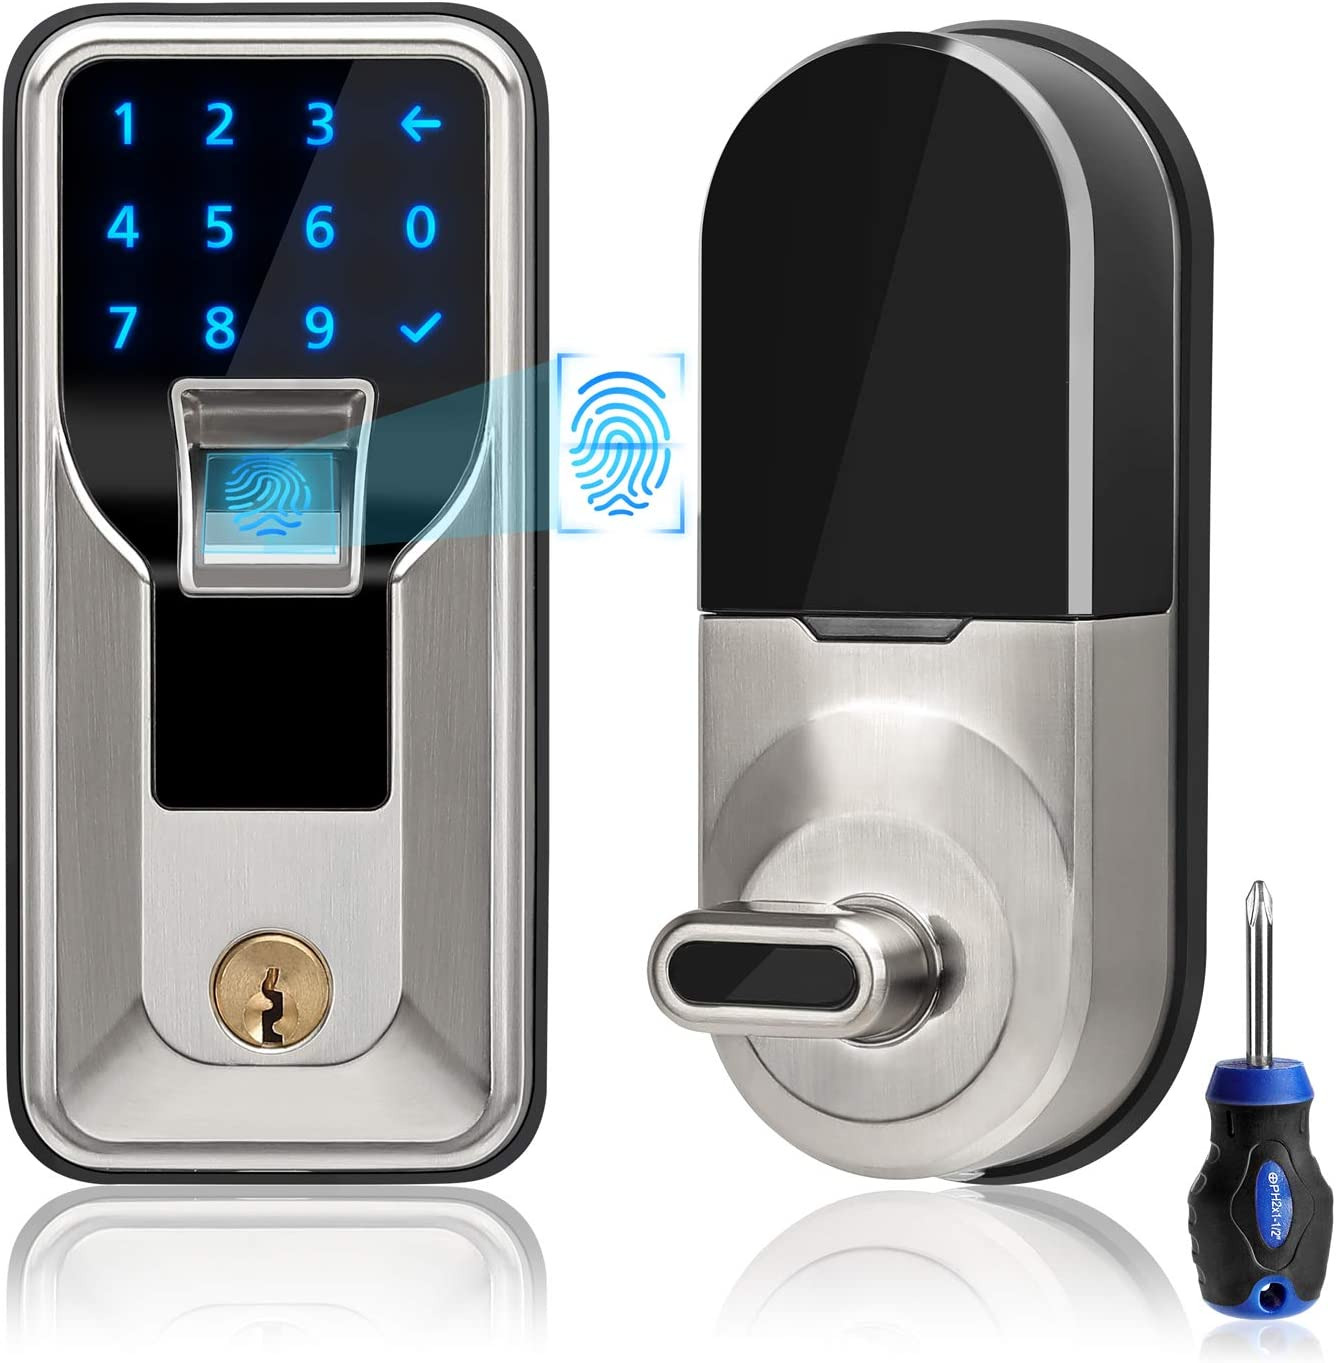 iMagic Electronic Fingerprint Deadbolt, Keypad Entry Door Lock, LED Touch Screen Keypad Lock with Built-in Alarm, One-Touch Locking and Back up Key, Easy to Install for Home and Office (Satin Nickel)